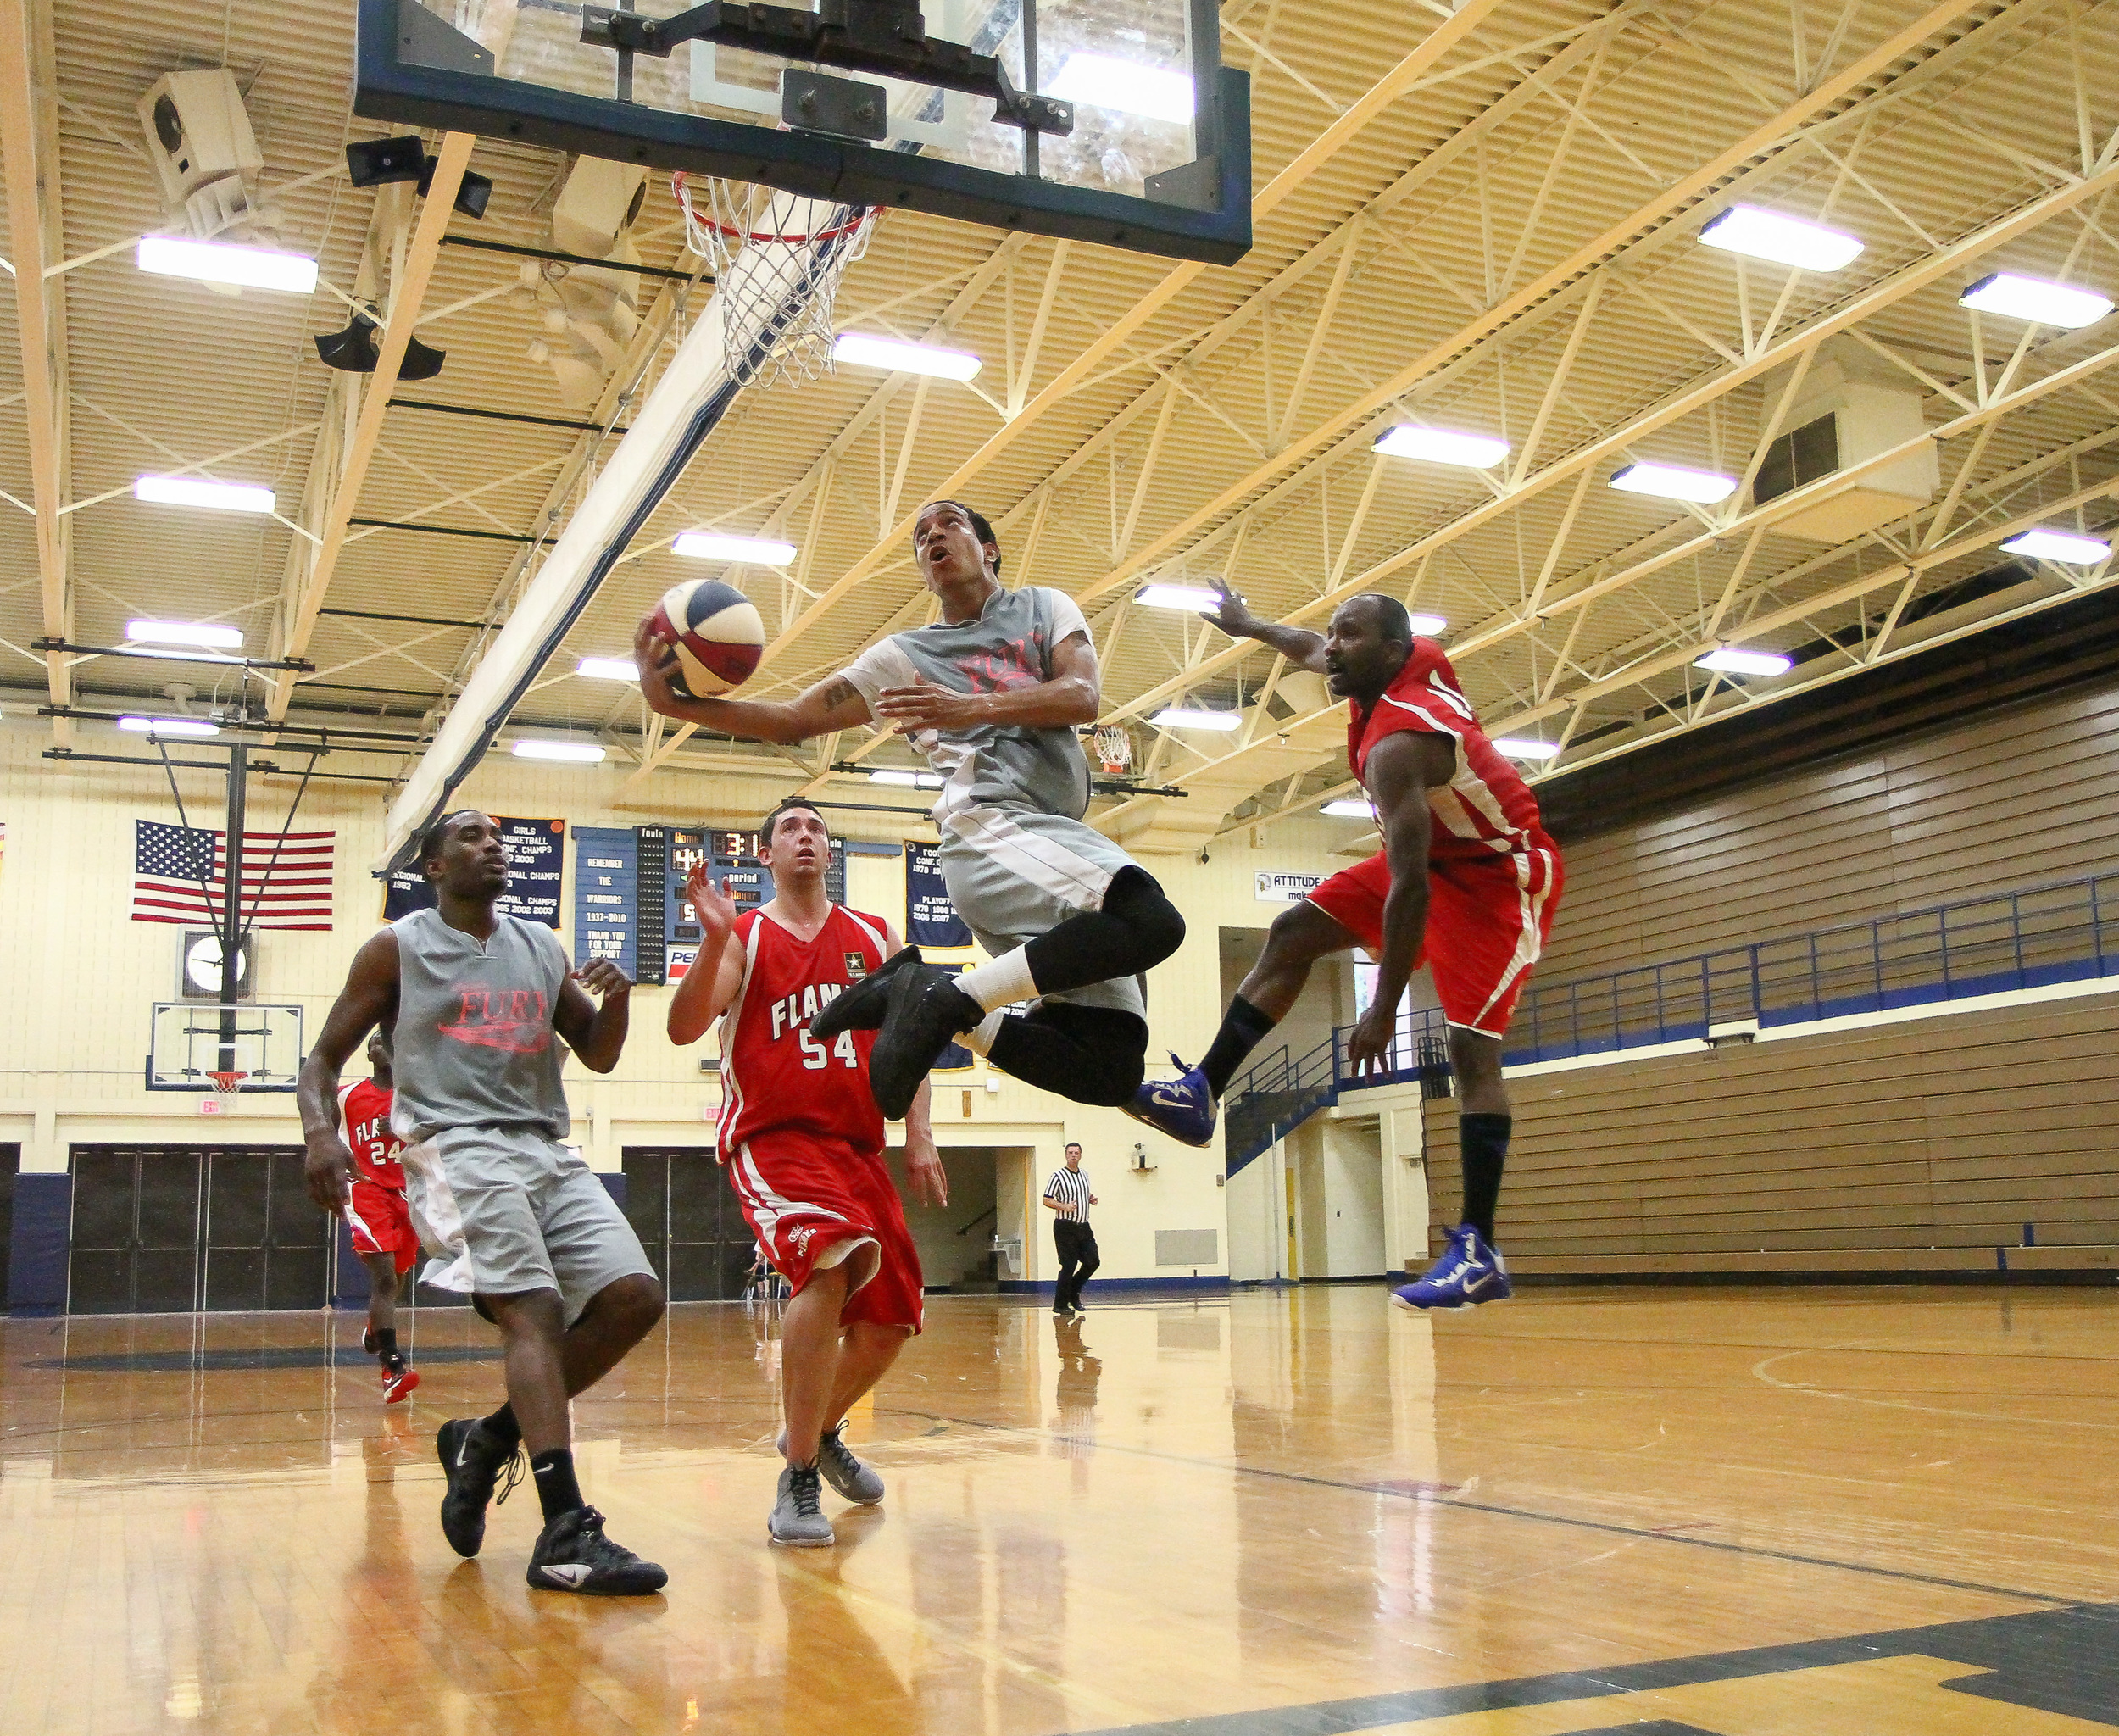 A Chicago Fury player attempts to score against the Midwest Flames.